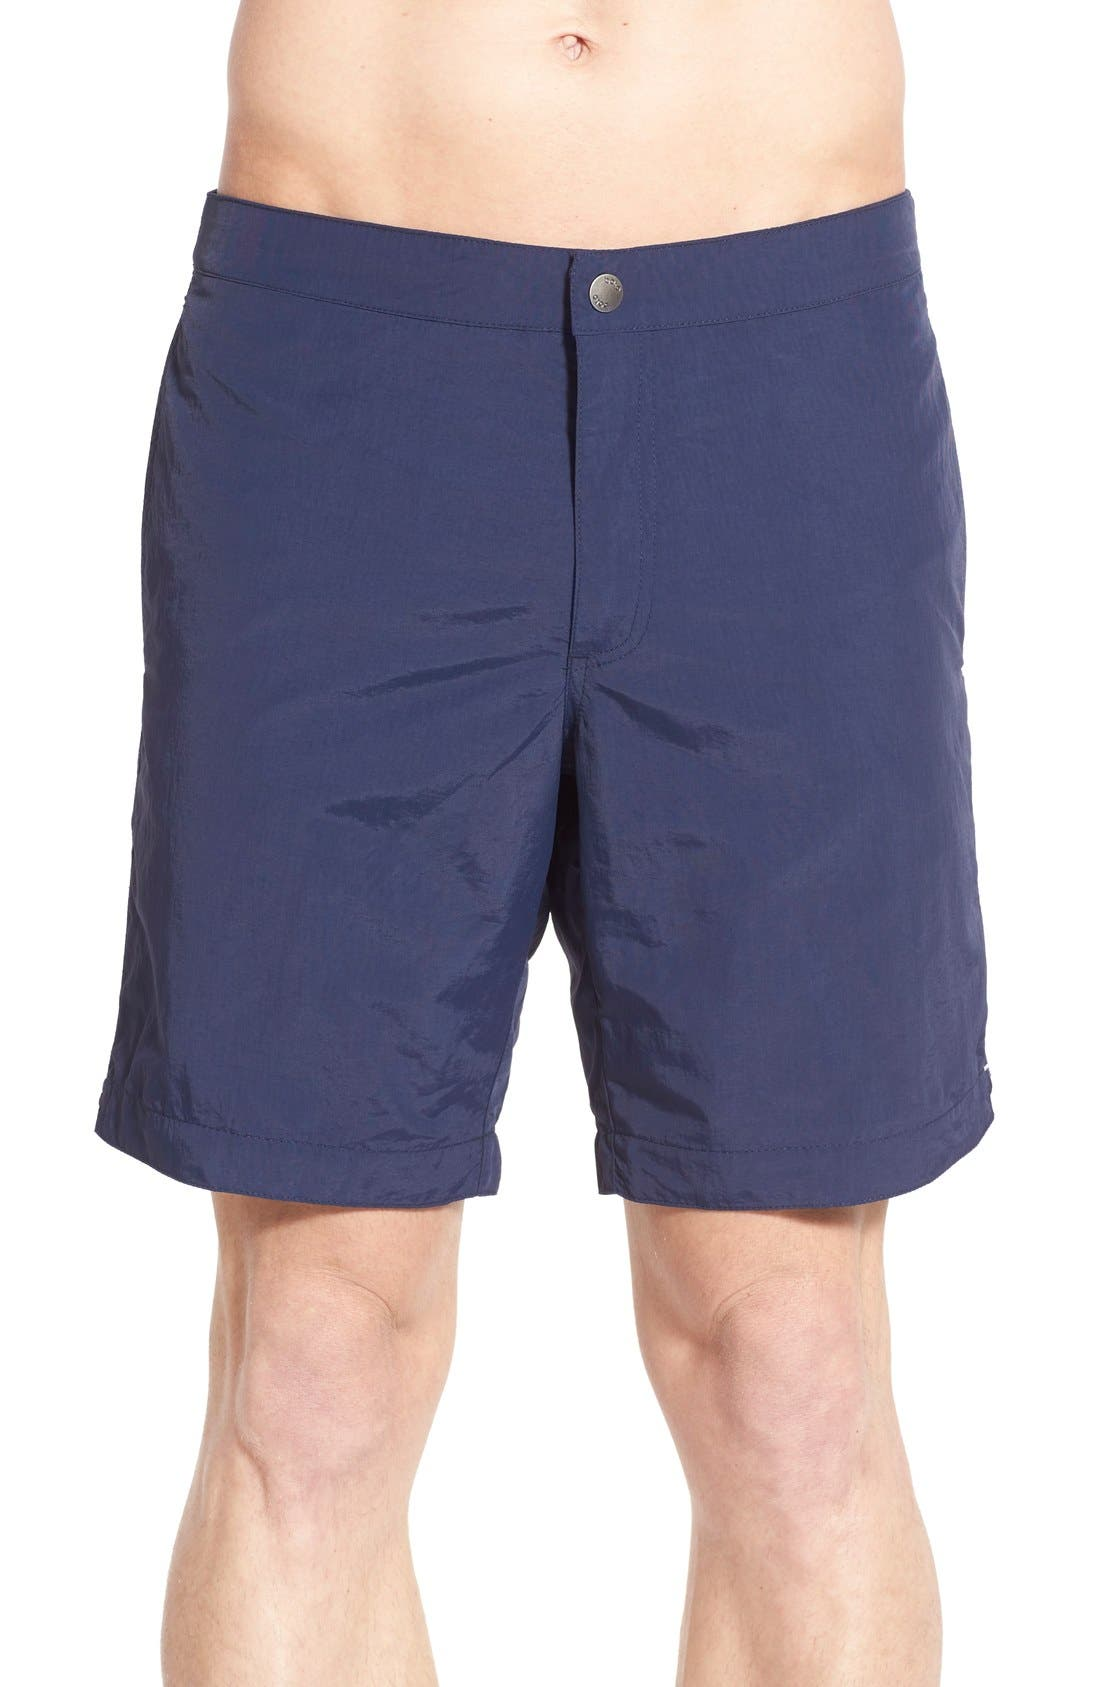 Aruba Tailored Fit 8.5 Inch Swim Trunks,                         Main,                         color, Deep Navy Blue